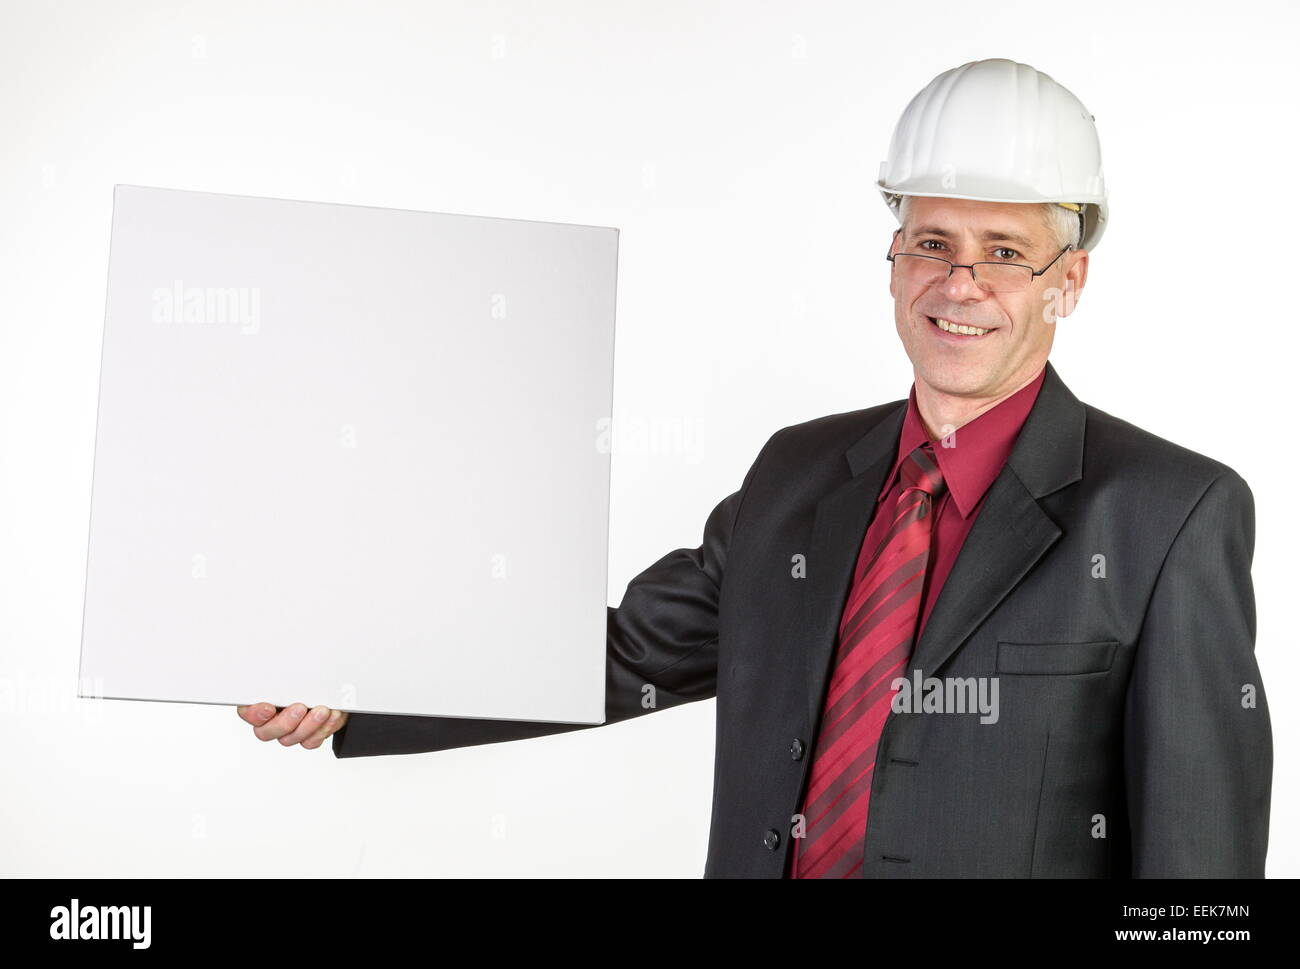 Architekt mit weißer Schrifttafel, Architekt with white script board - Stock Image